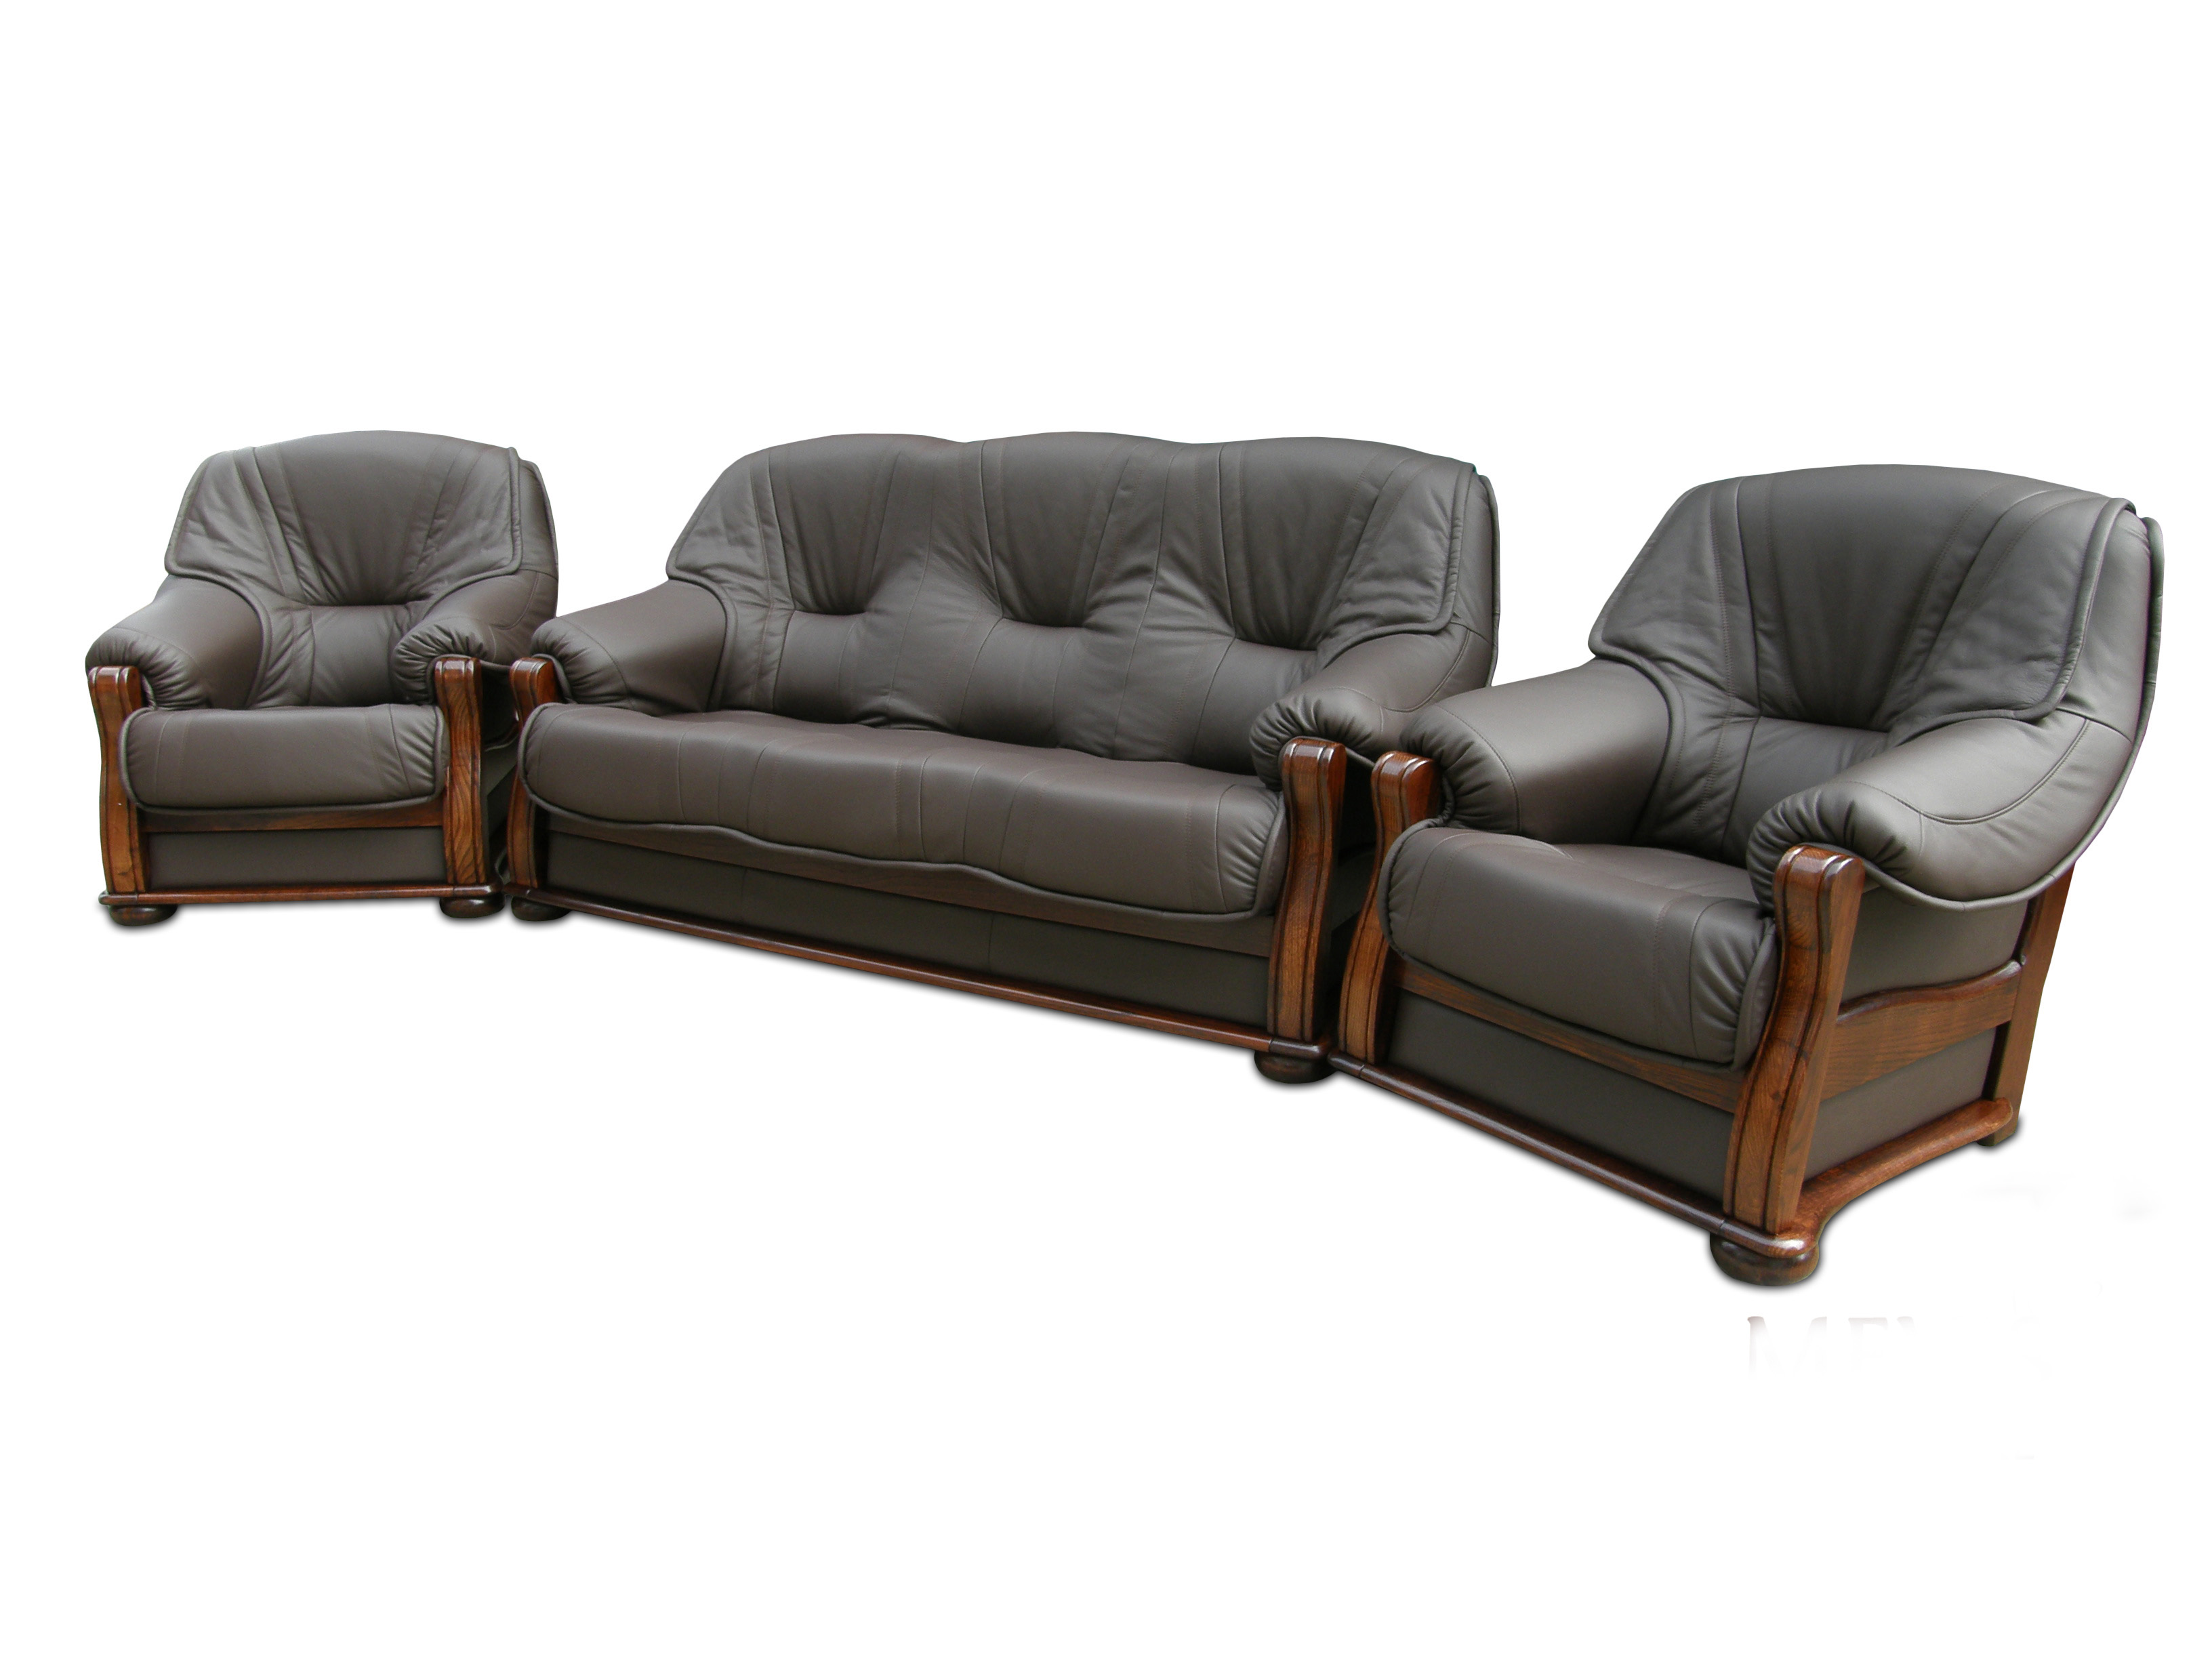 sofa usado olx sp leather and loveseat deals quality sofas ireland baci living room